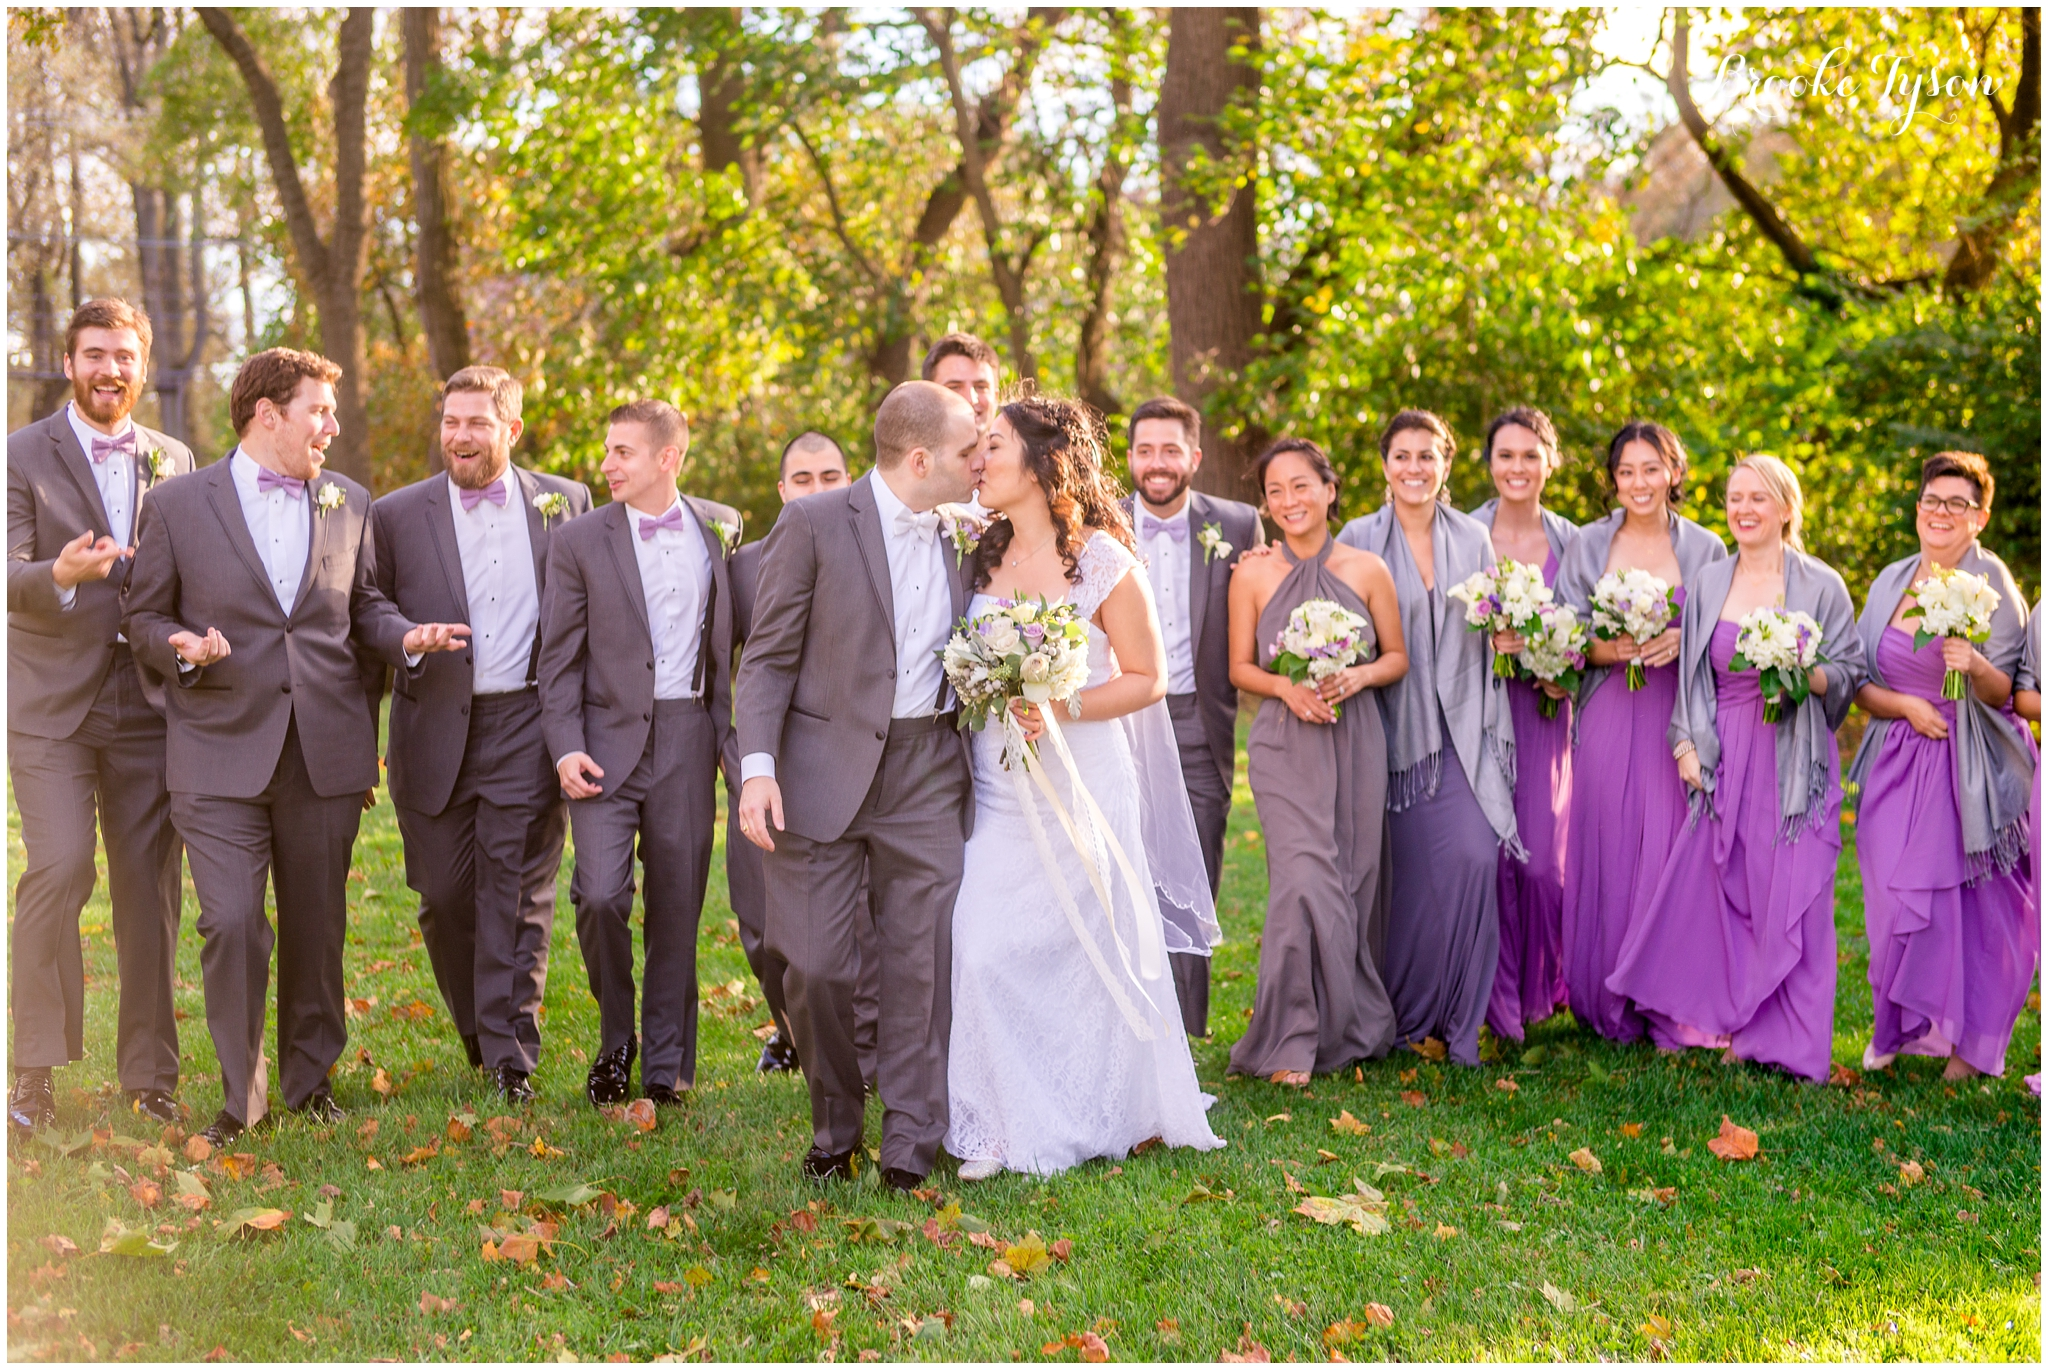 11c28454c0c6b Tina + Jacob, a Rock Creek Mansion Wedding - Maryland Wedding ...